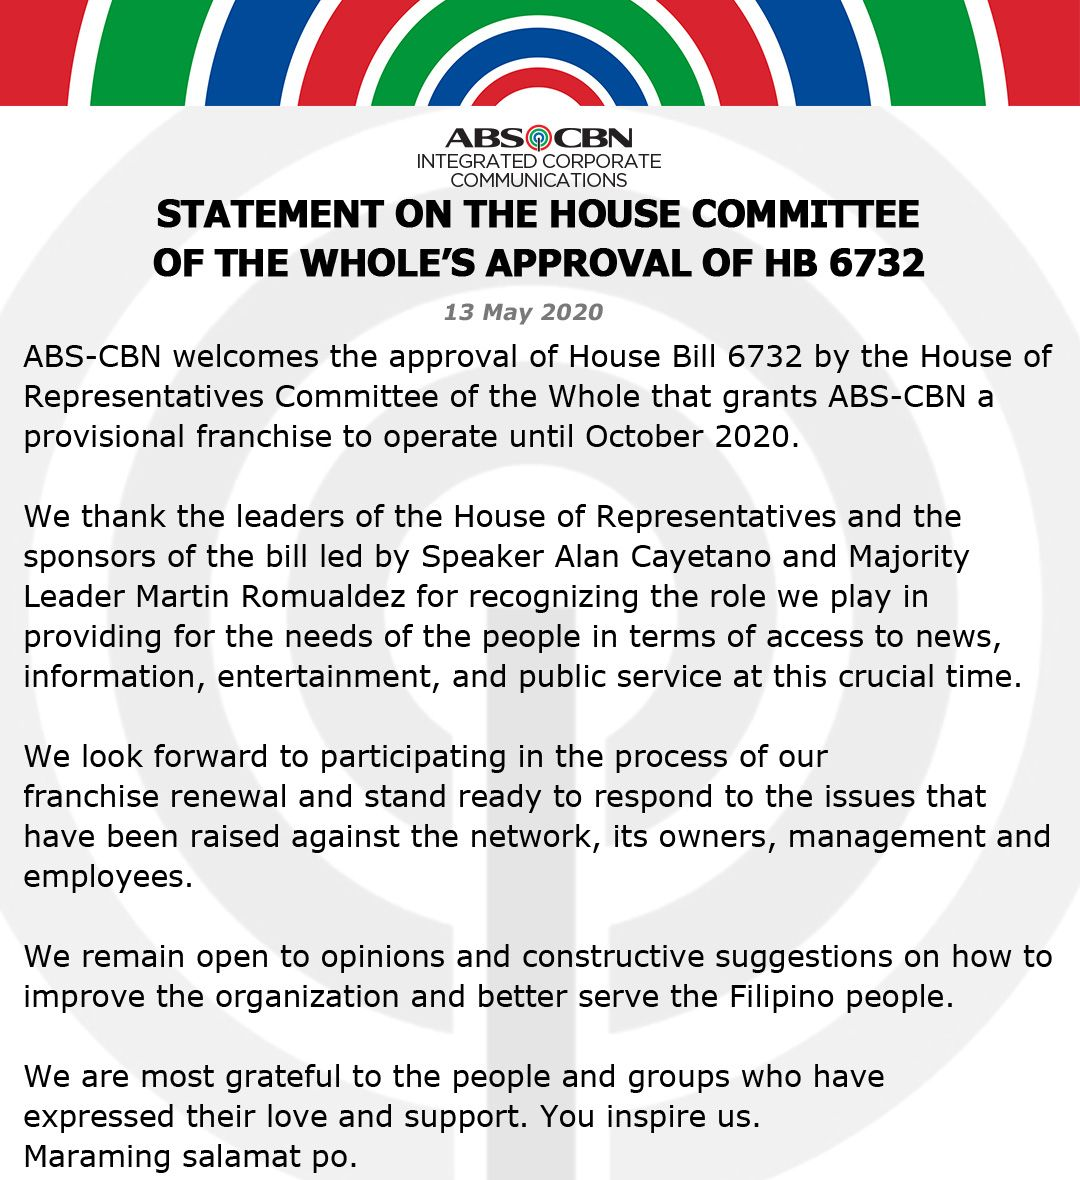 Artcard Statement on the House Committee of the Whole approval of HB 6732